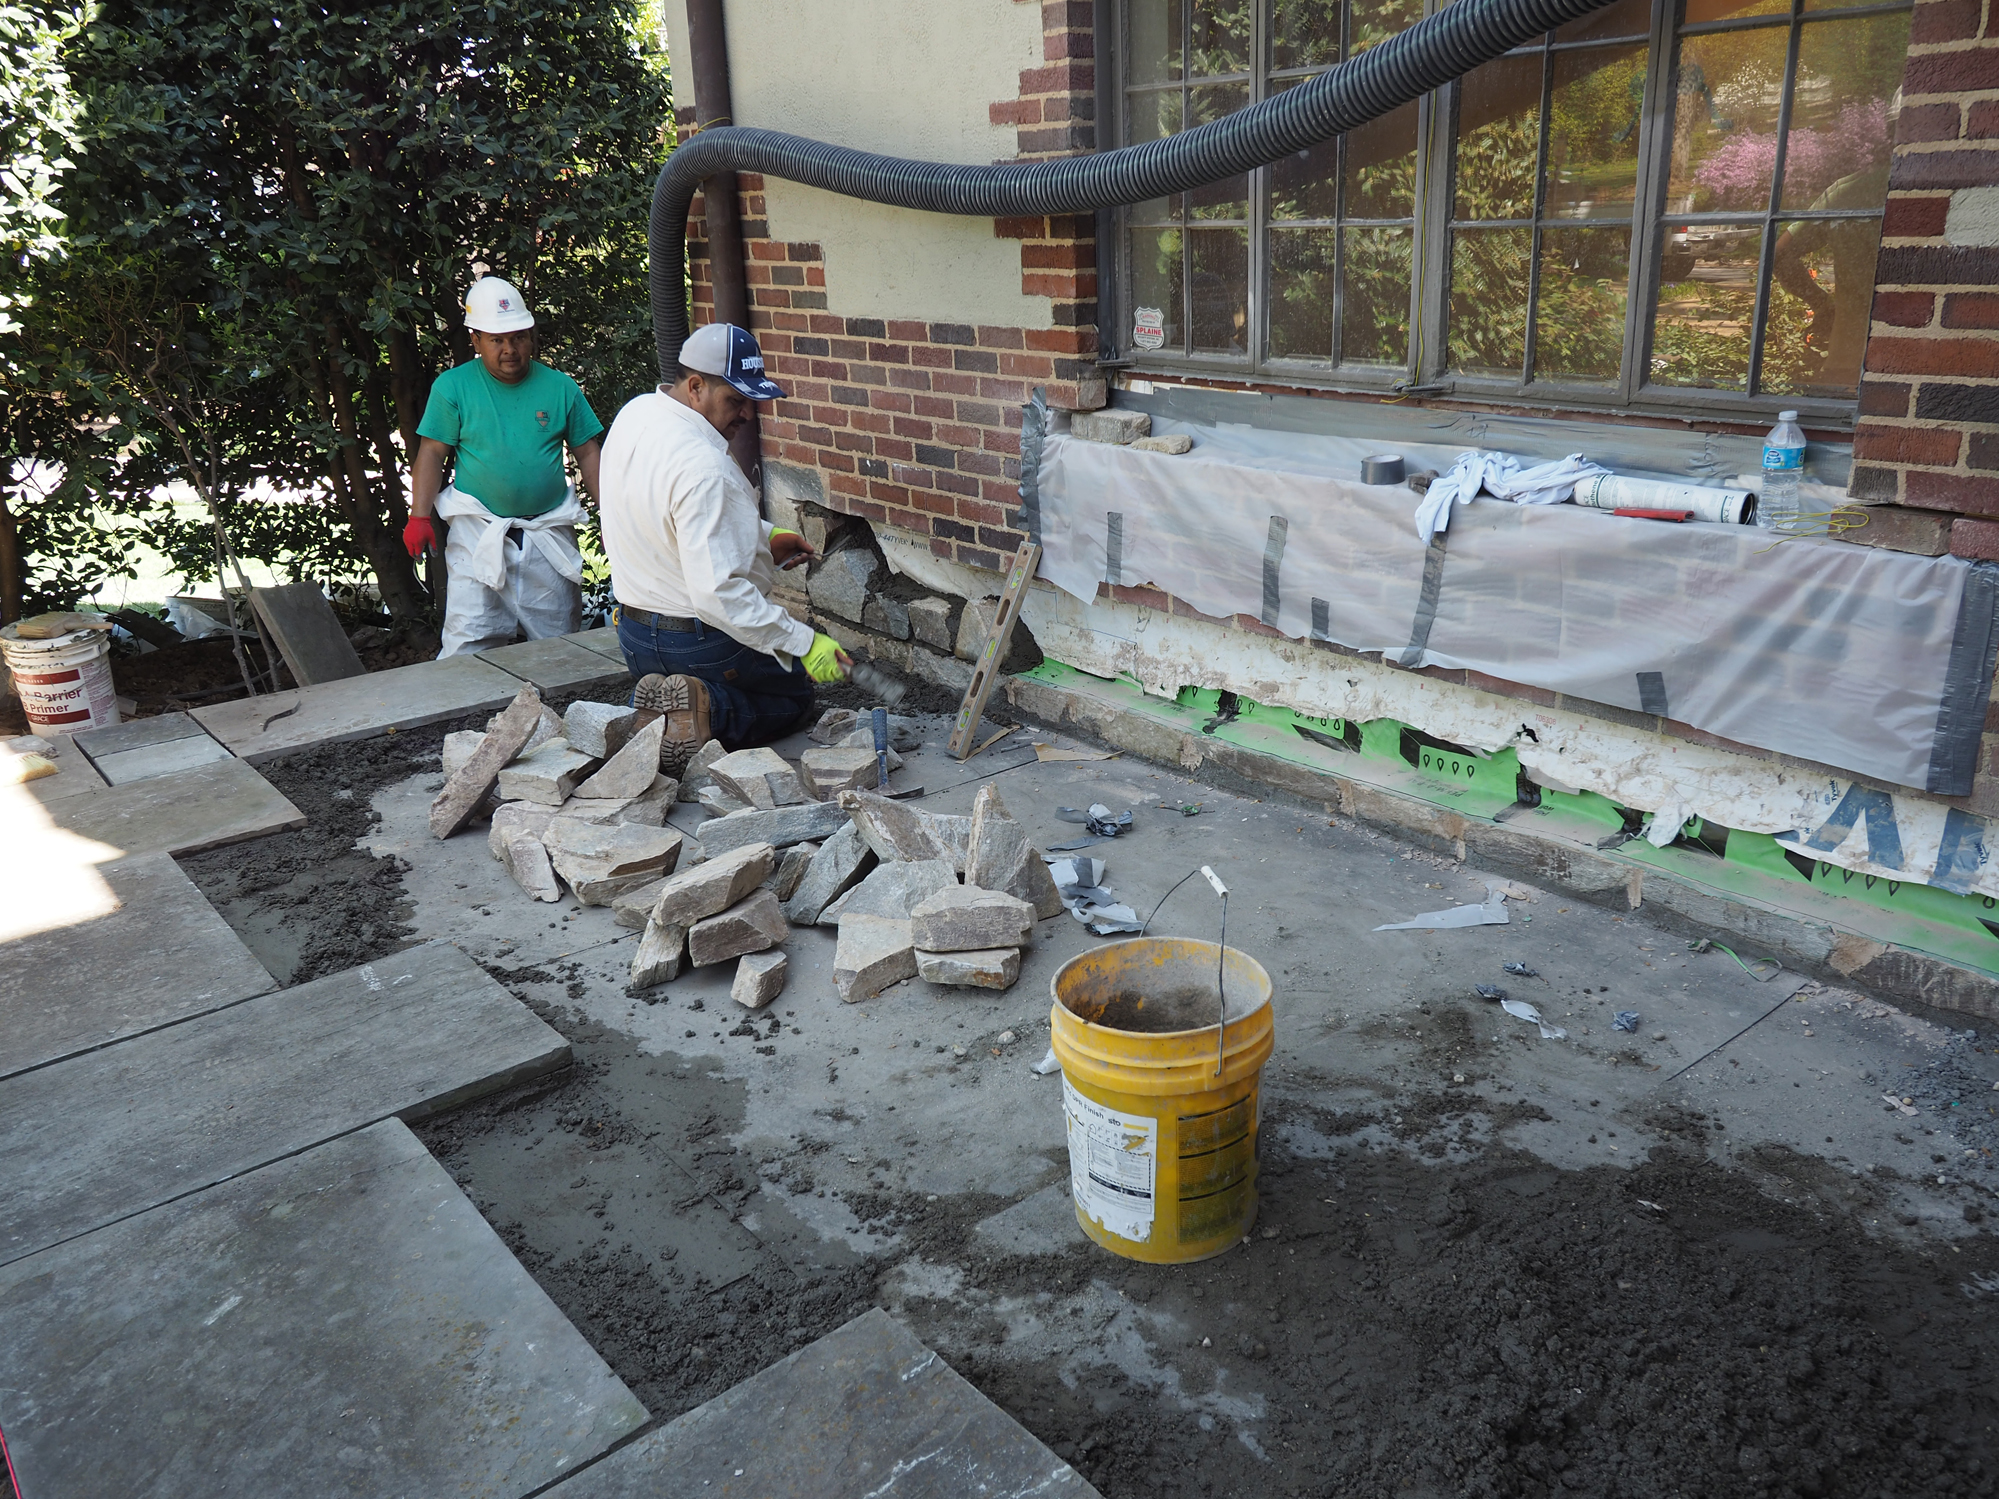 Repairing Stone Patios Over Living Space | JLC Online | Roof Decking,  Roofing, Roof Underlayment, Moisture Barriers, Decks